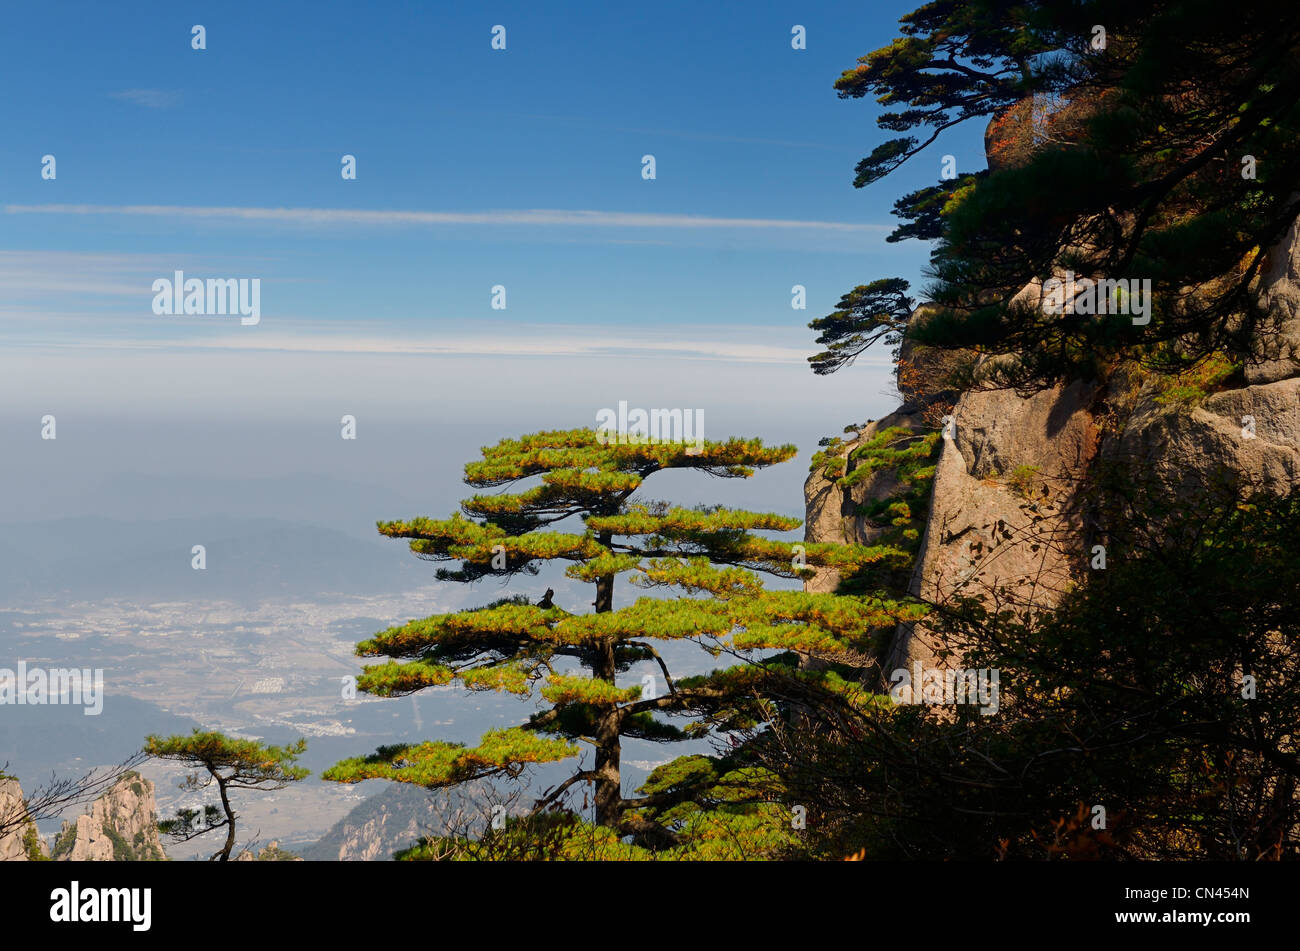 Pine trees on Beginning to Believe Peak over Gengchengzhen town at Yellow Mountain Huangshan China - Stock Image